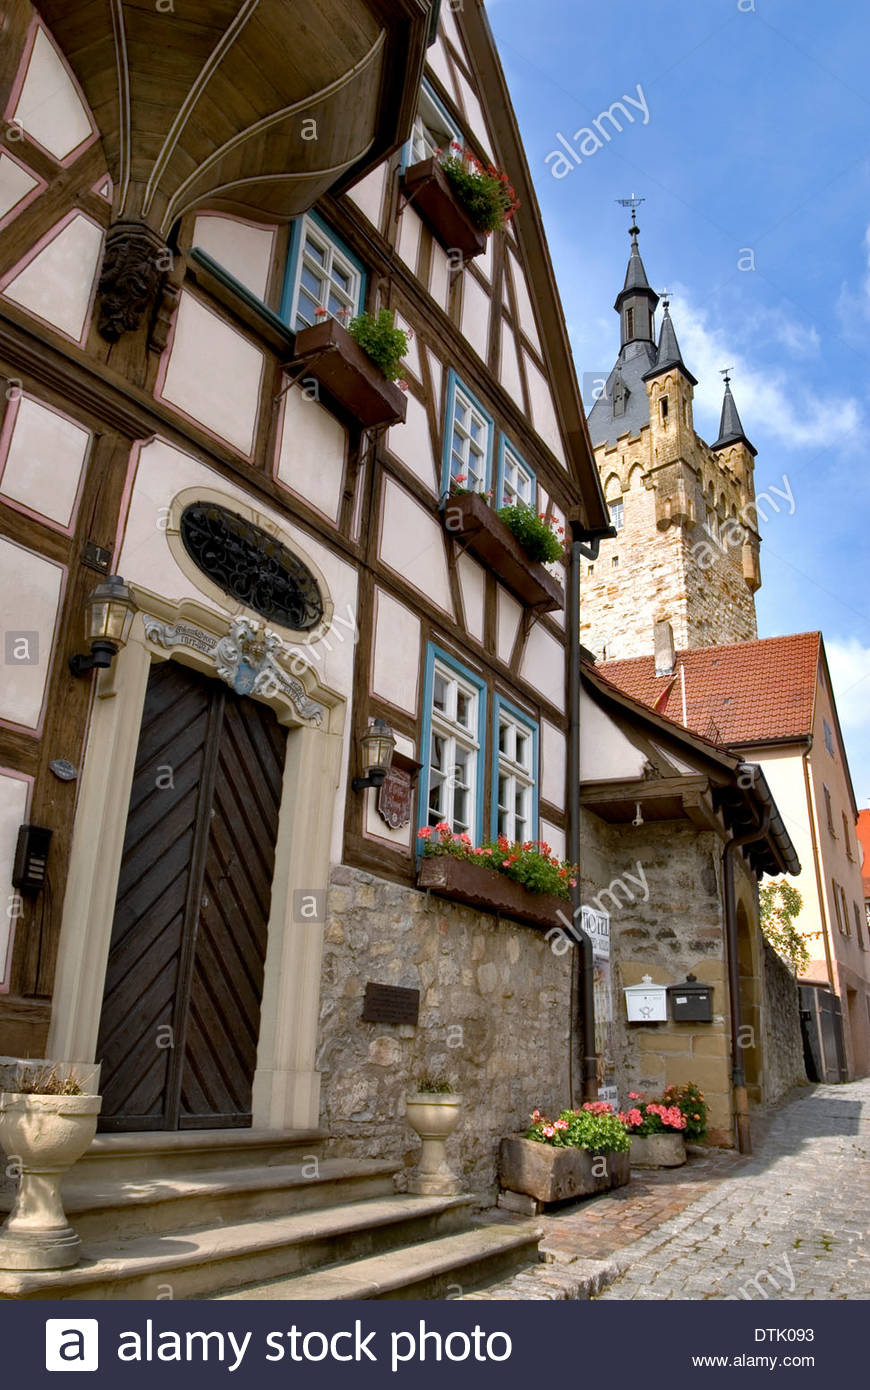 timber frame houses in the medieval town of bad wimpfen in baden stock photo royalty free image. Black Bedroom Furniture Sets. Home Design Ideas